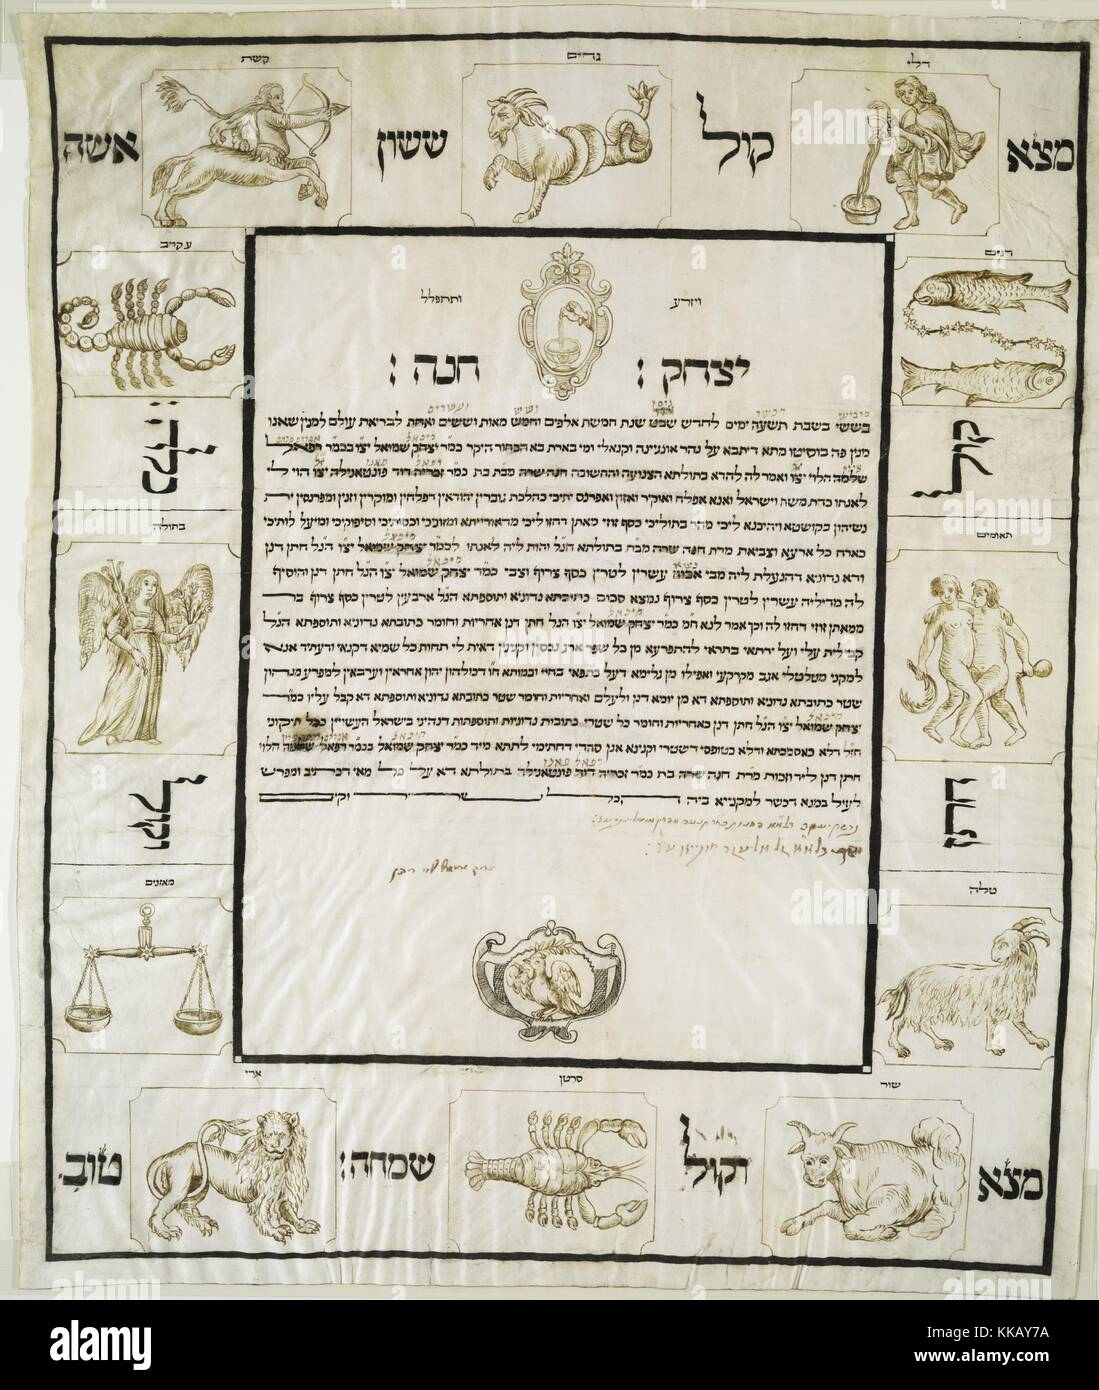 A page from a Ketubah, which is a form of marriage agreement in Jewish religious tradition,  decorated with symbols - Stock Image